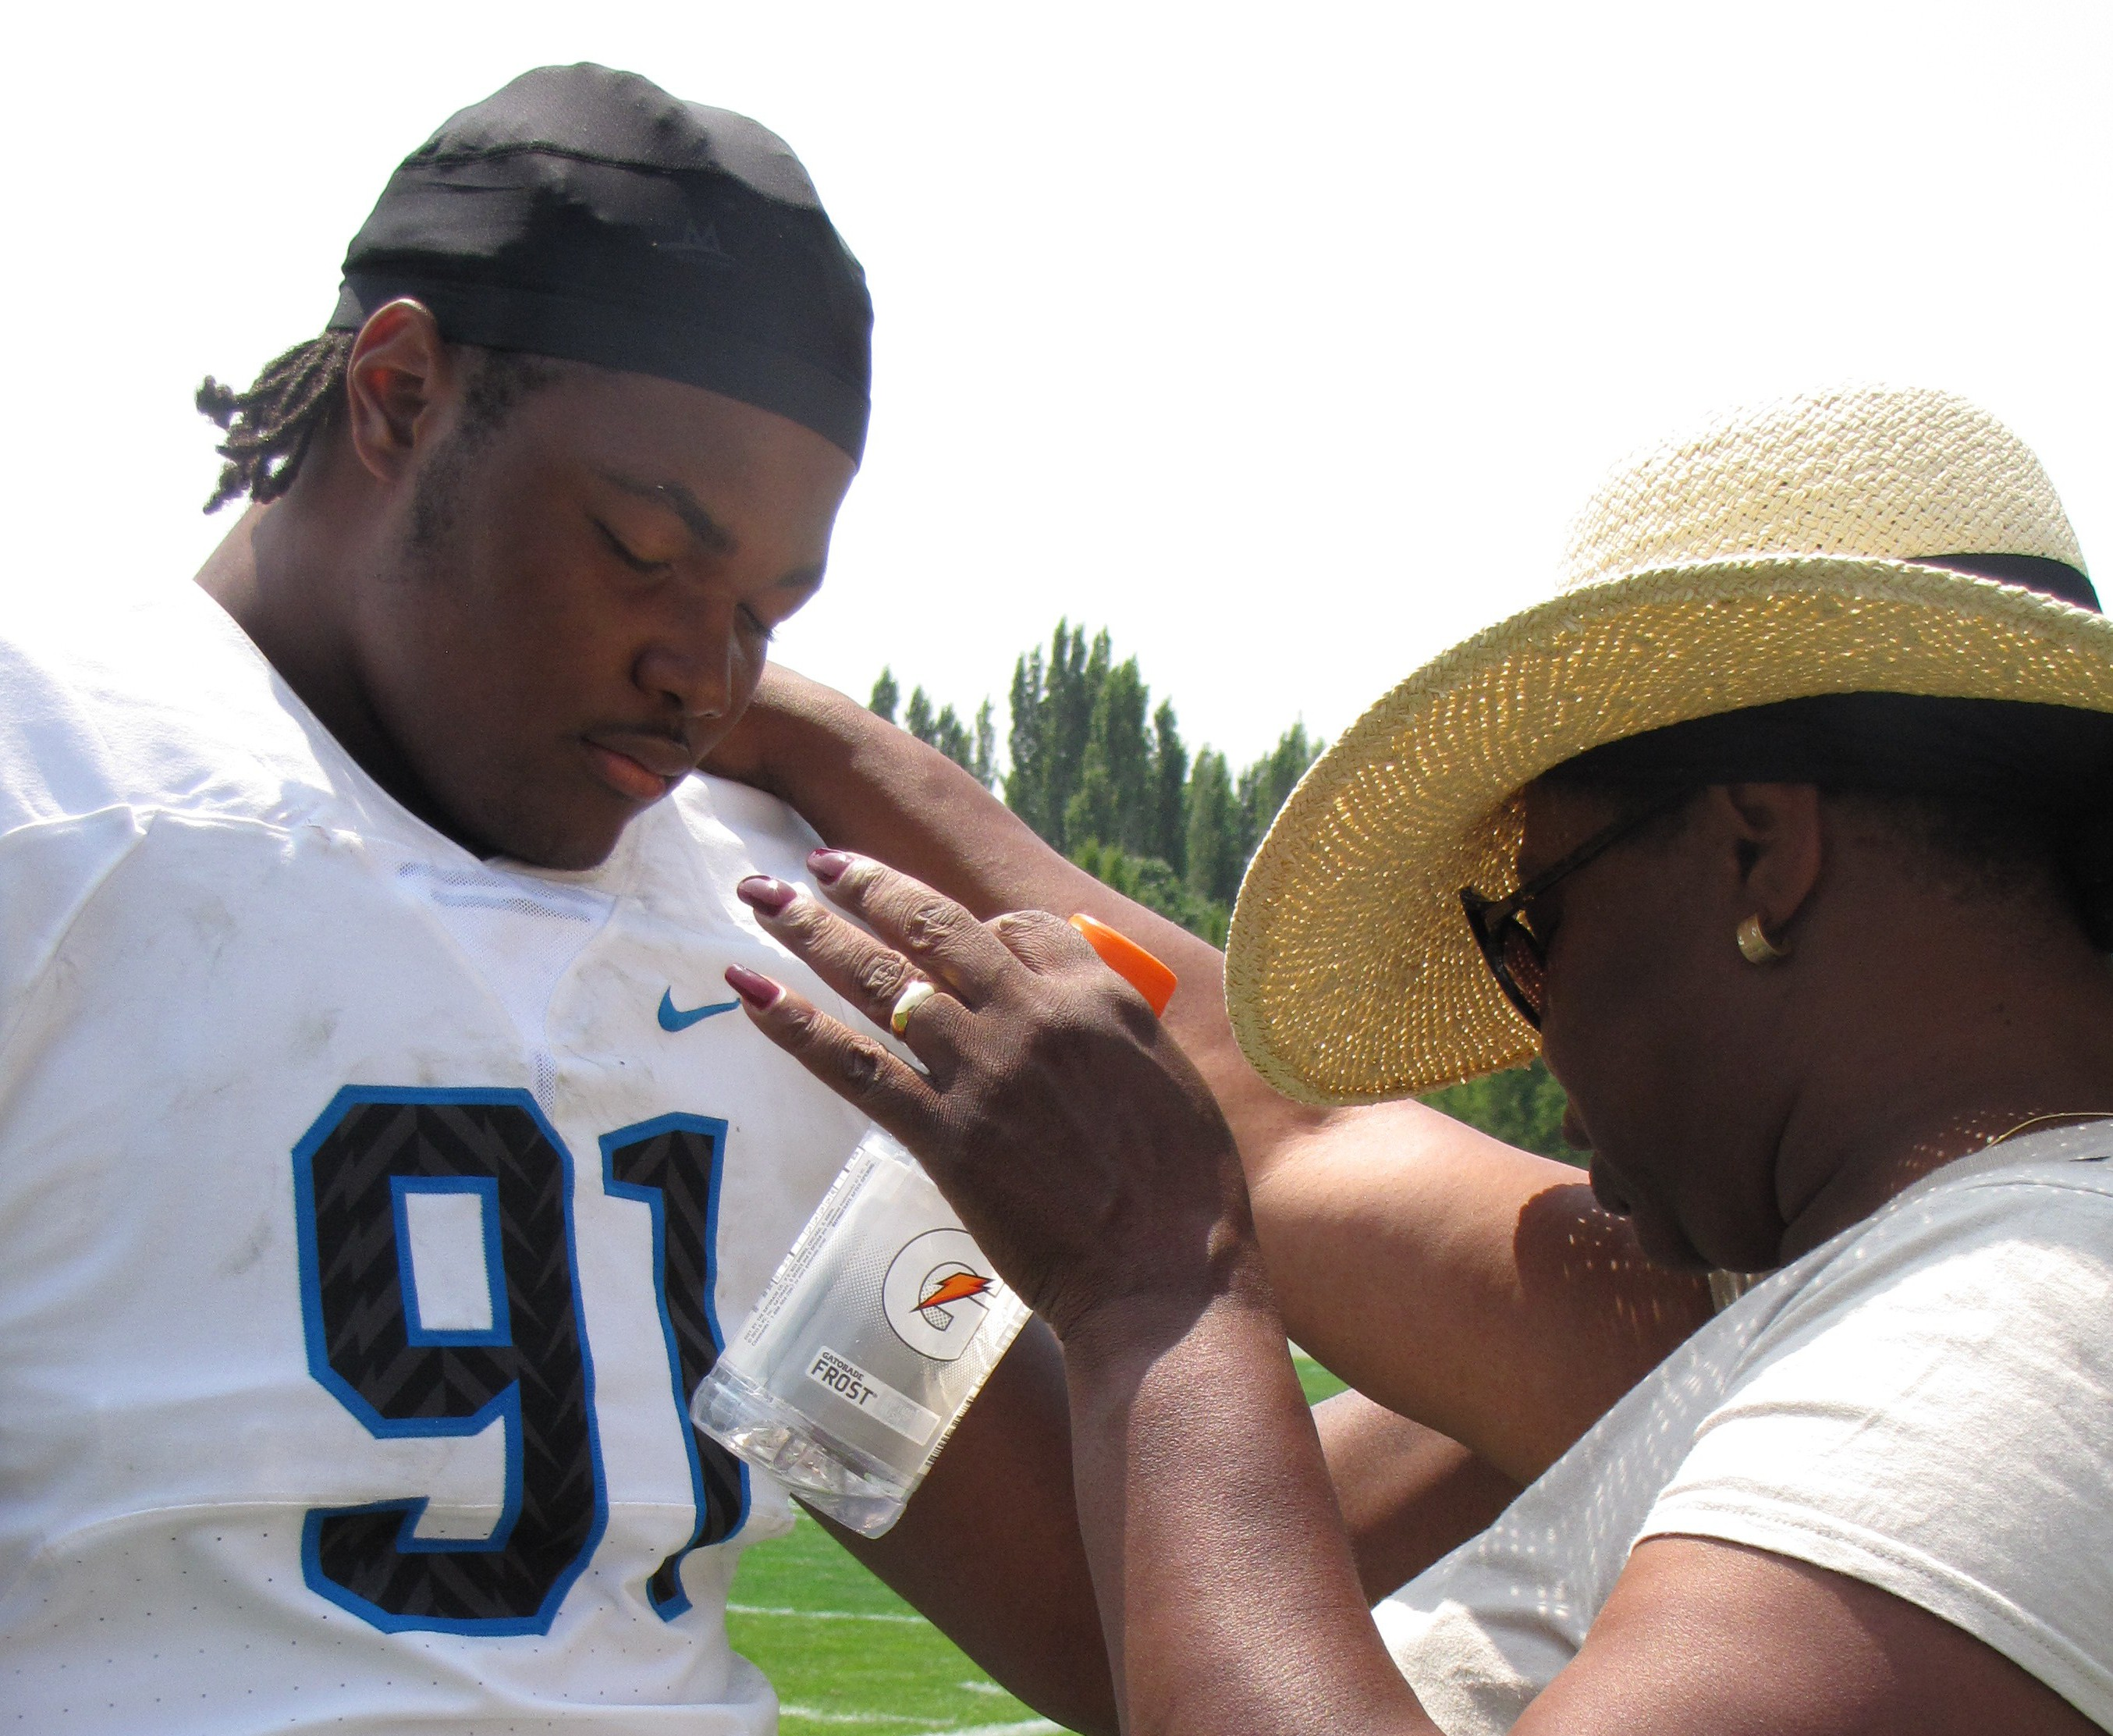 Rashan Gary and his mother, Jennifer Coney, confer during Thursday's linemen challenge at Nike's The Opening in Beaverton, Ore. Photo: Jim Halley, USA TODAY Sports